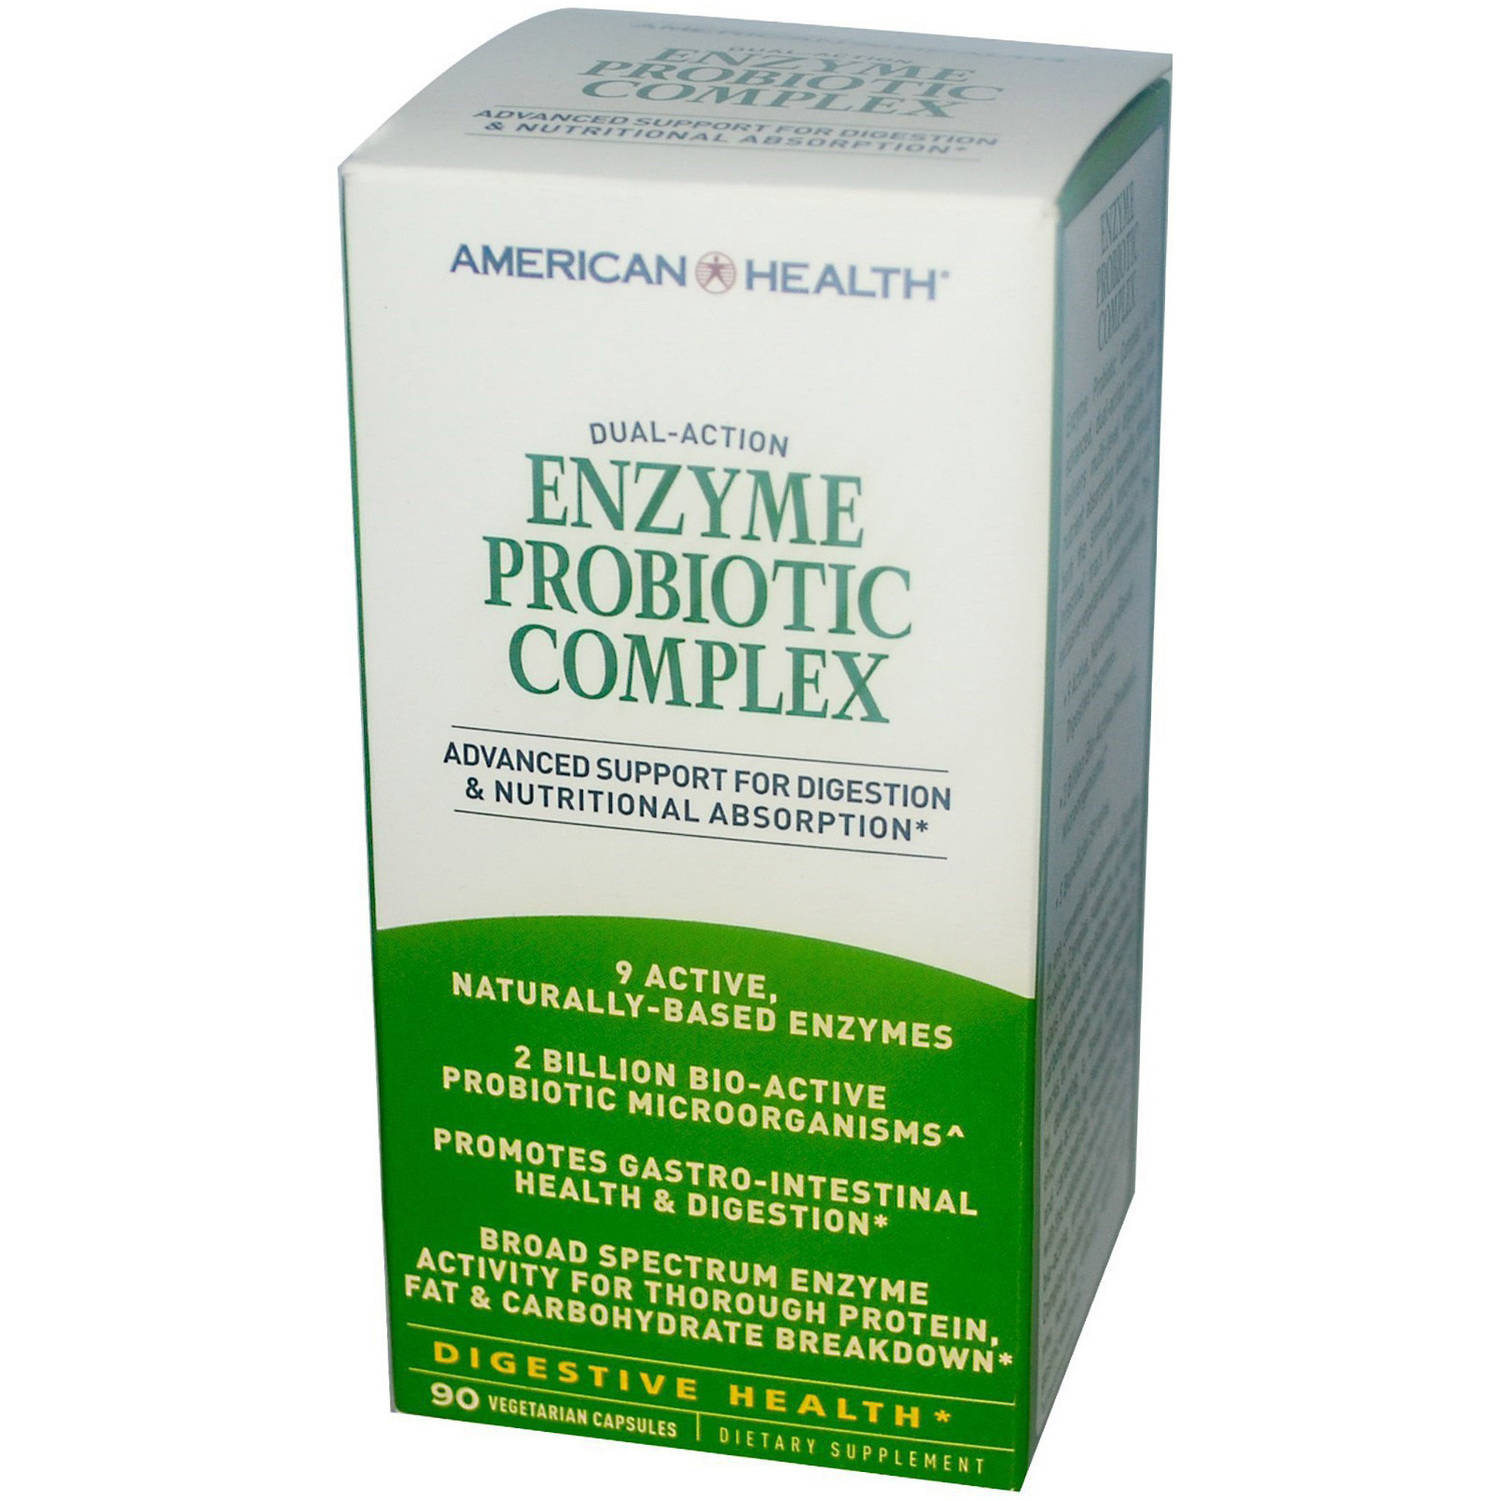 American Health Enzyme Probiotic Complex, 90 CT